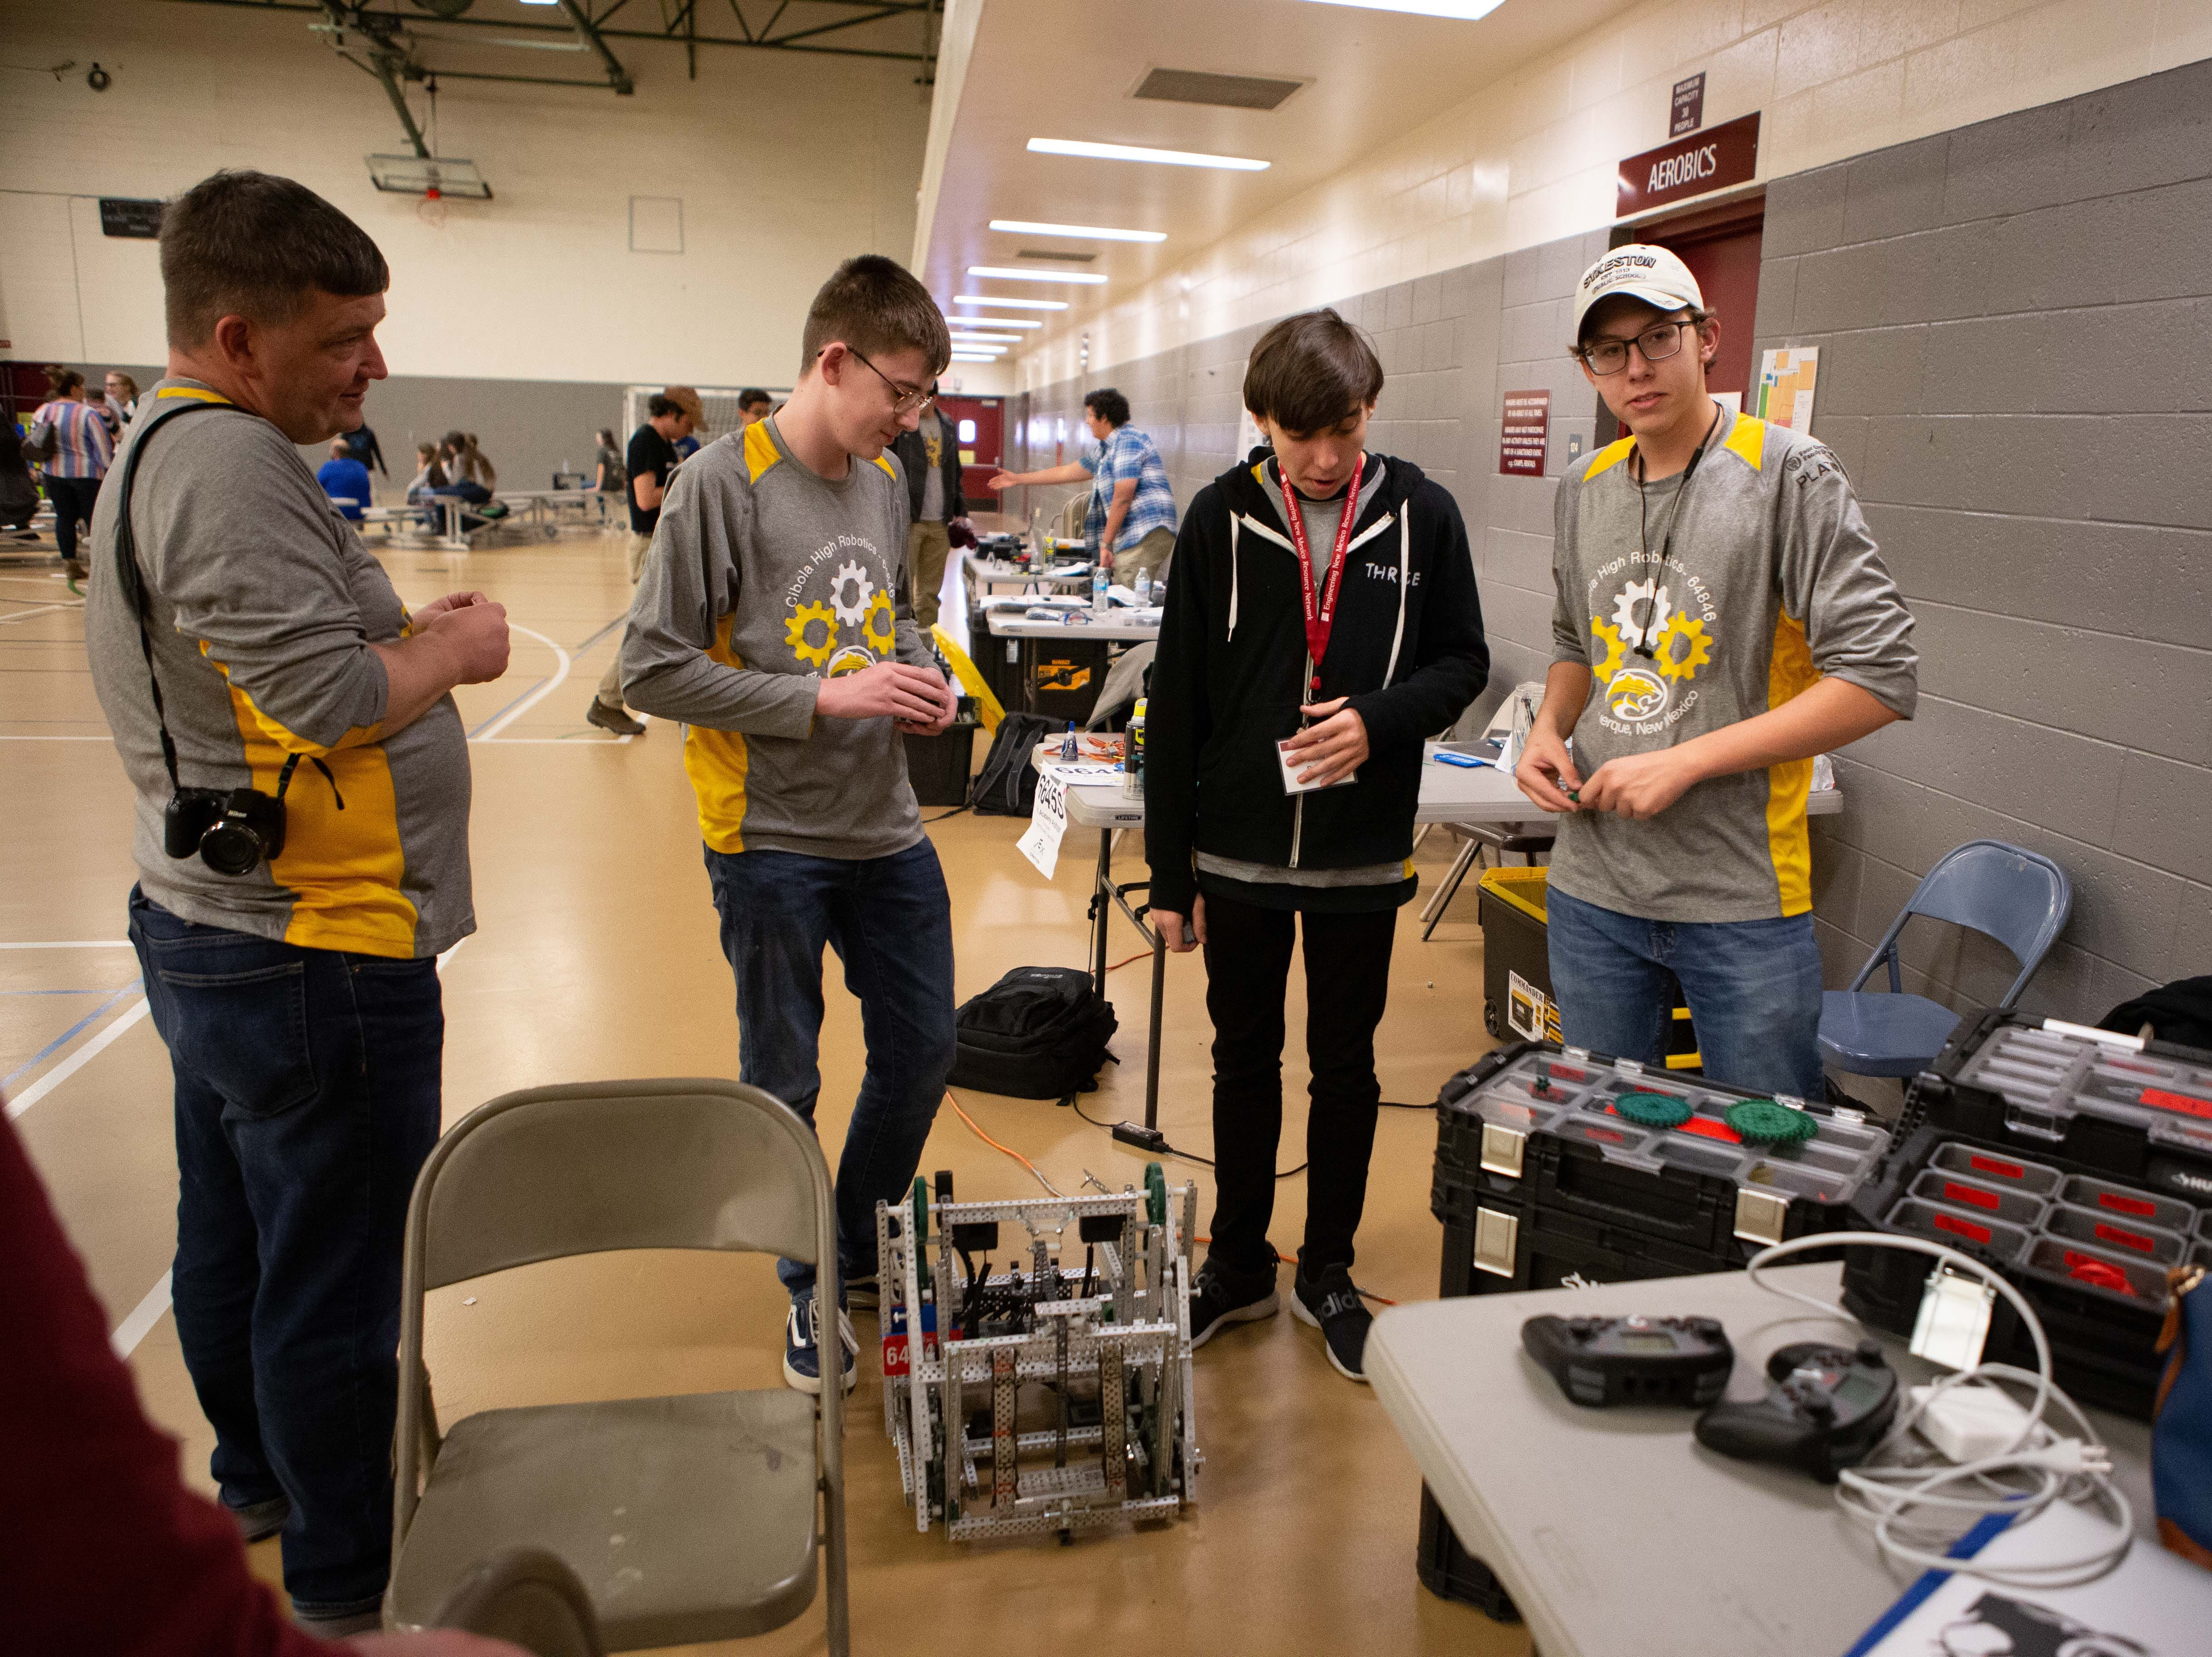 Cibola High School's team, from right, is Connor Giese, 16, Noah Fry, 16, and Evan De Buck, 16. Father Peter De Buck is at far left. The team was one of two that that prevailed in the VEX Robotics competition Saturday, Feb. 16, 2019.